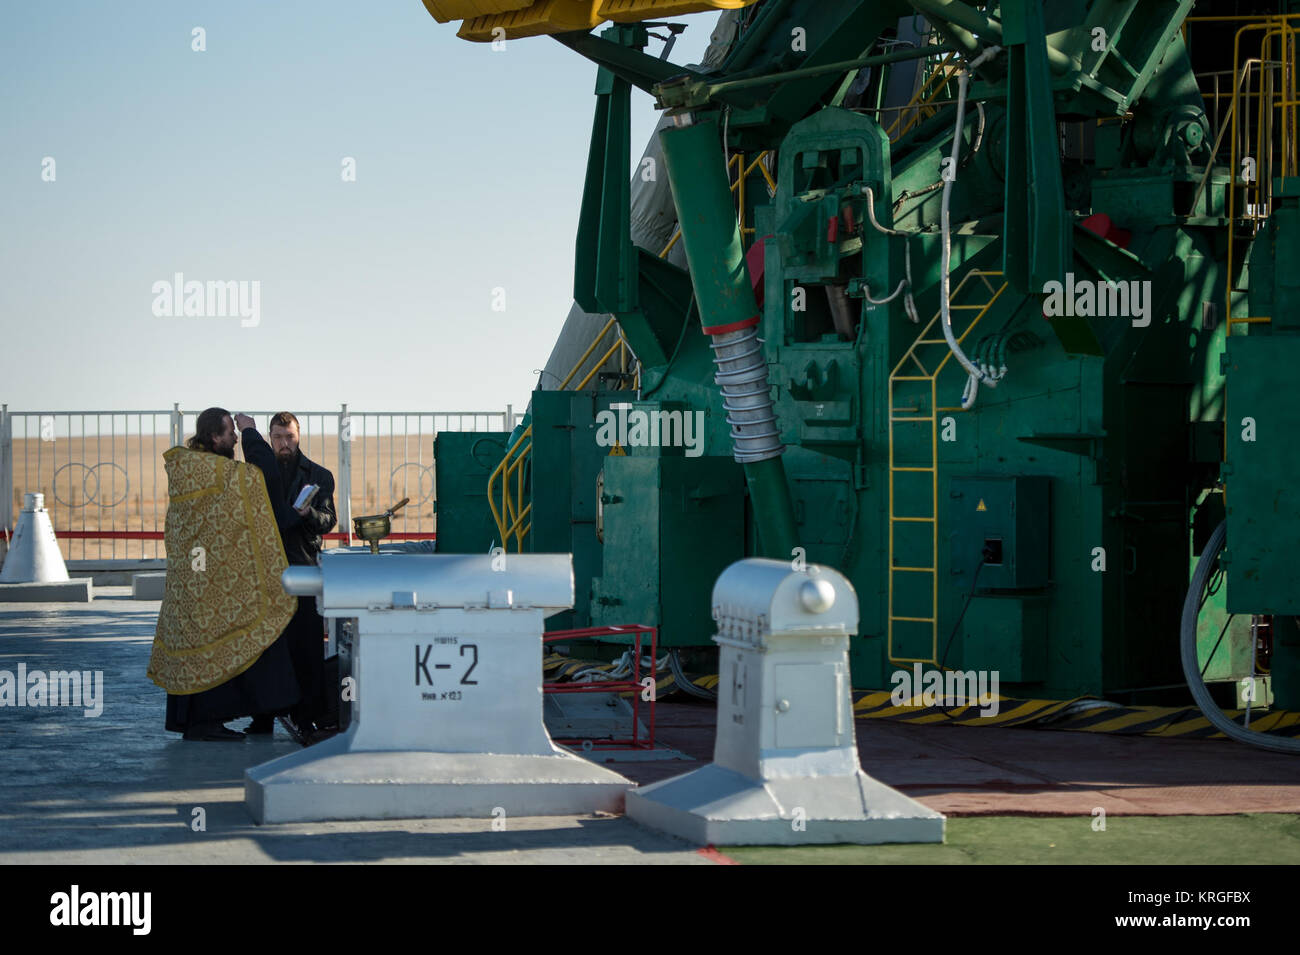 An Orthodox priest blesses the Soyuz rocket at the Baikonur Cosmodrome Launch pad on Wednesday, Nov. 6, 2013 in Stock Photo